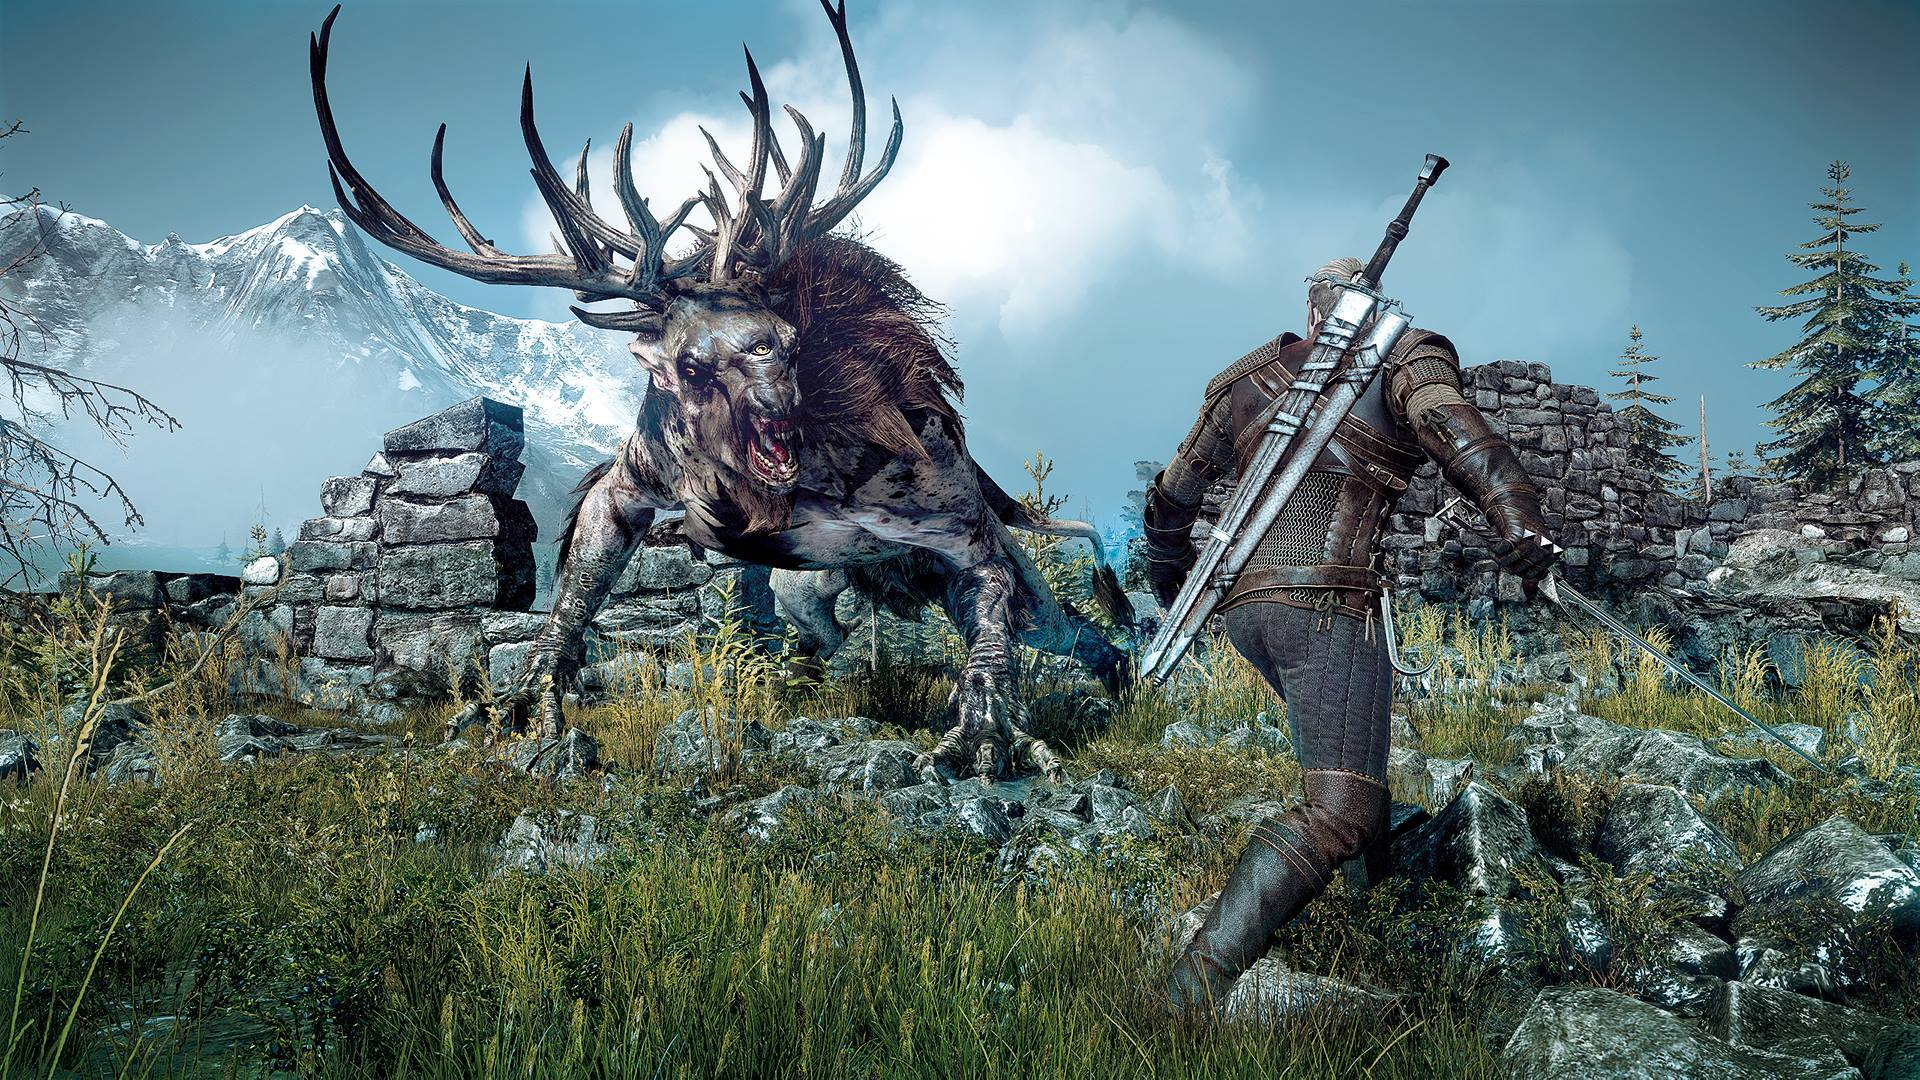 The Witcher 3 launch cinematic A Night to Remember